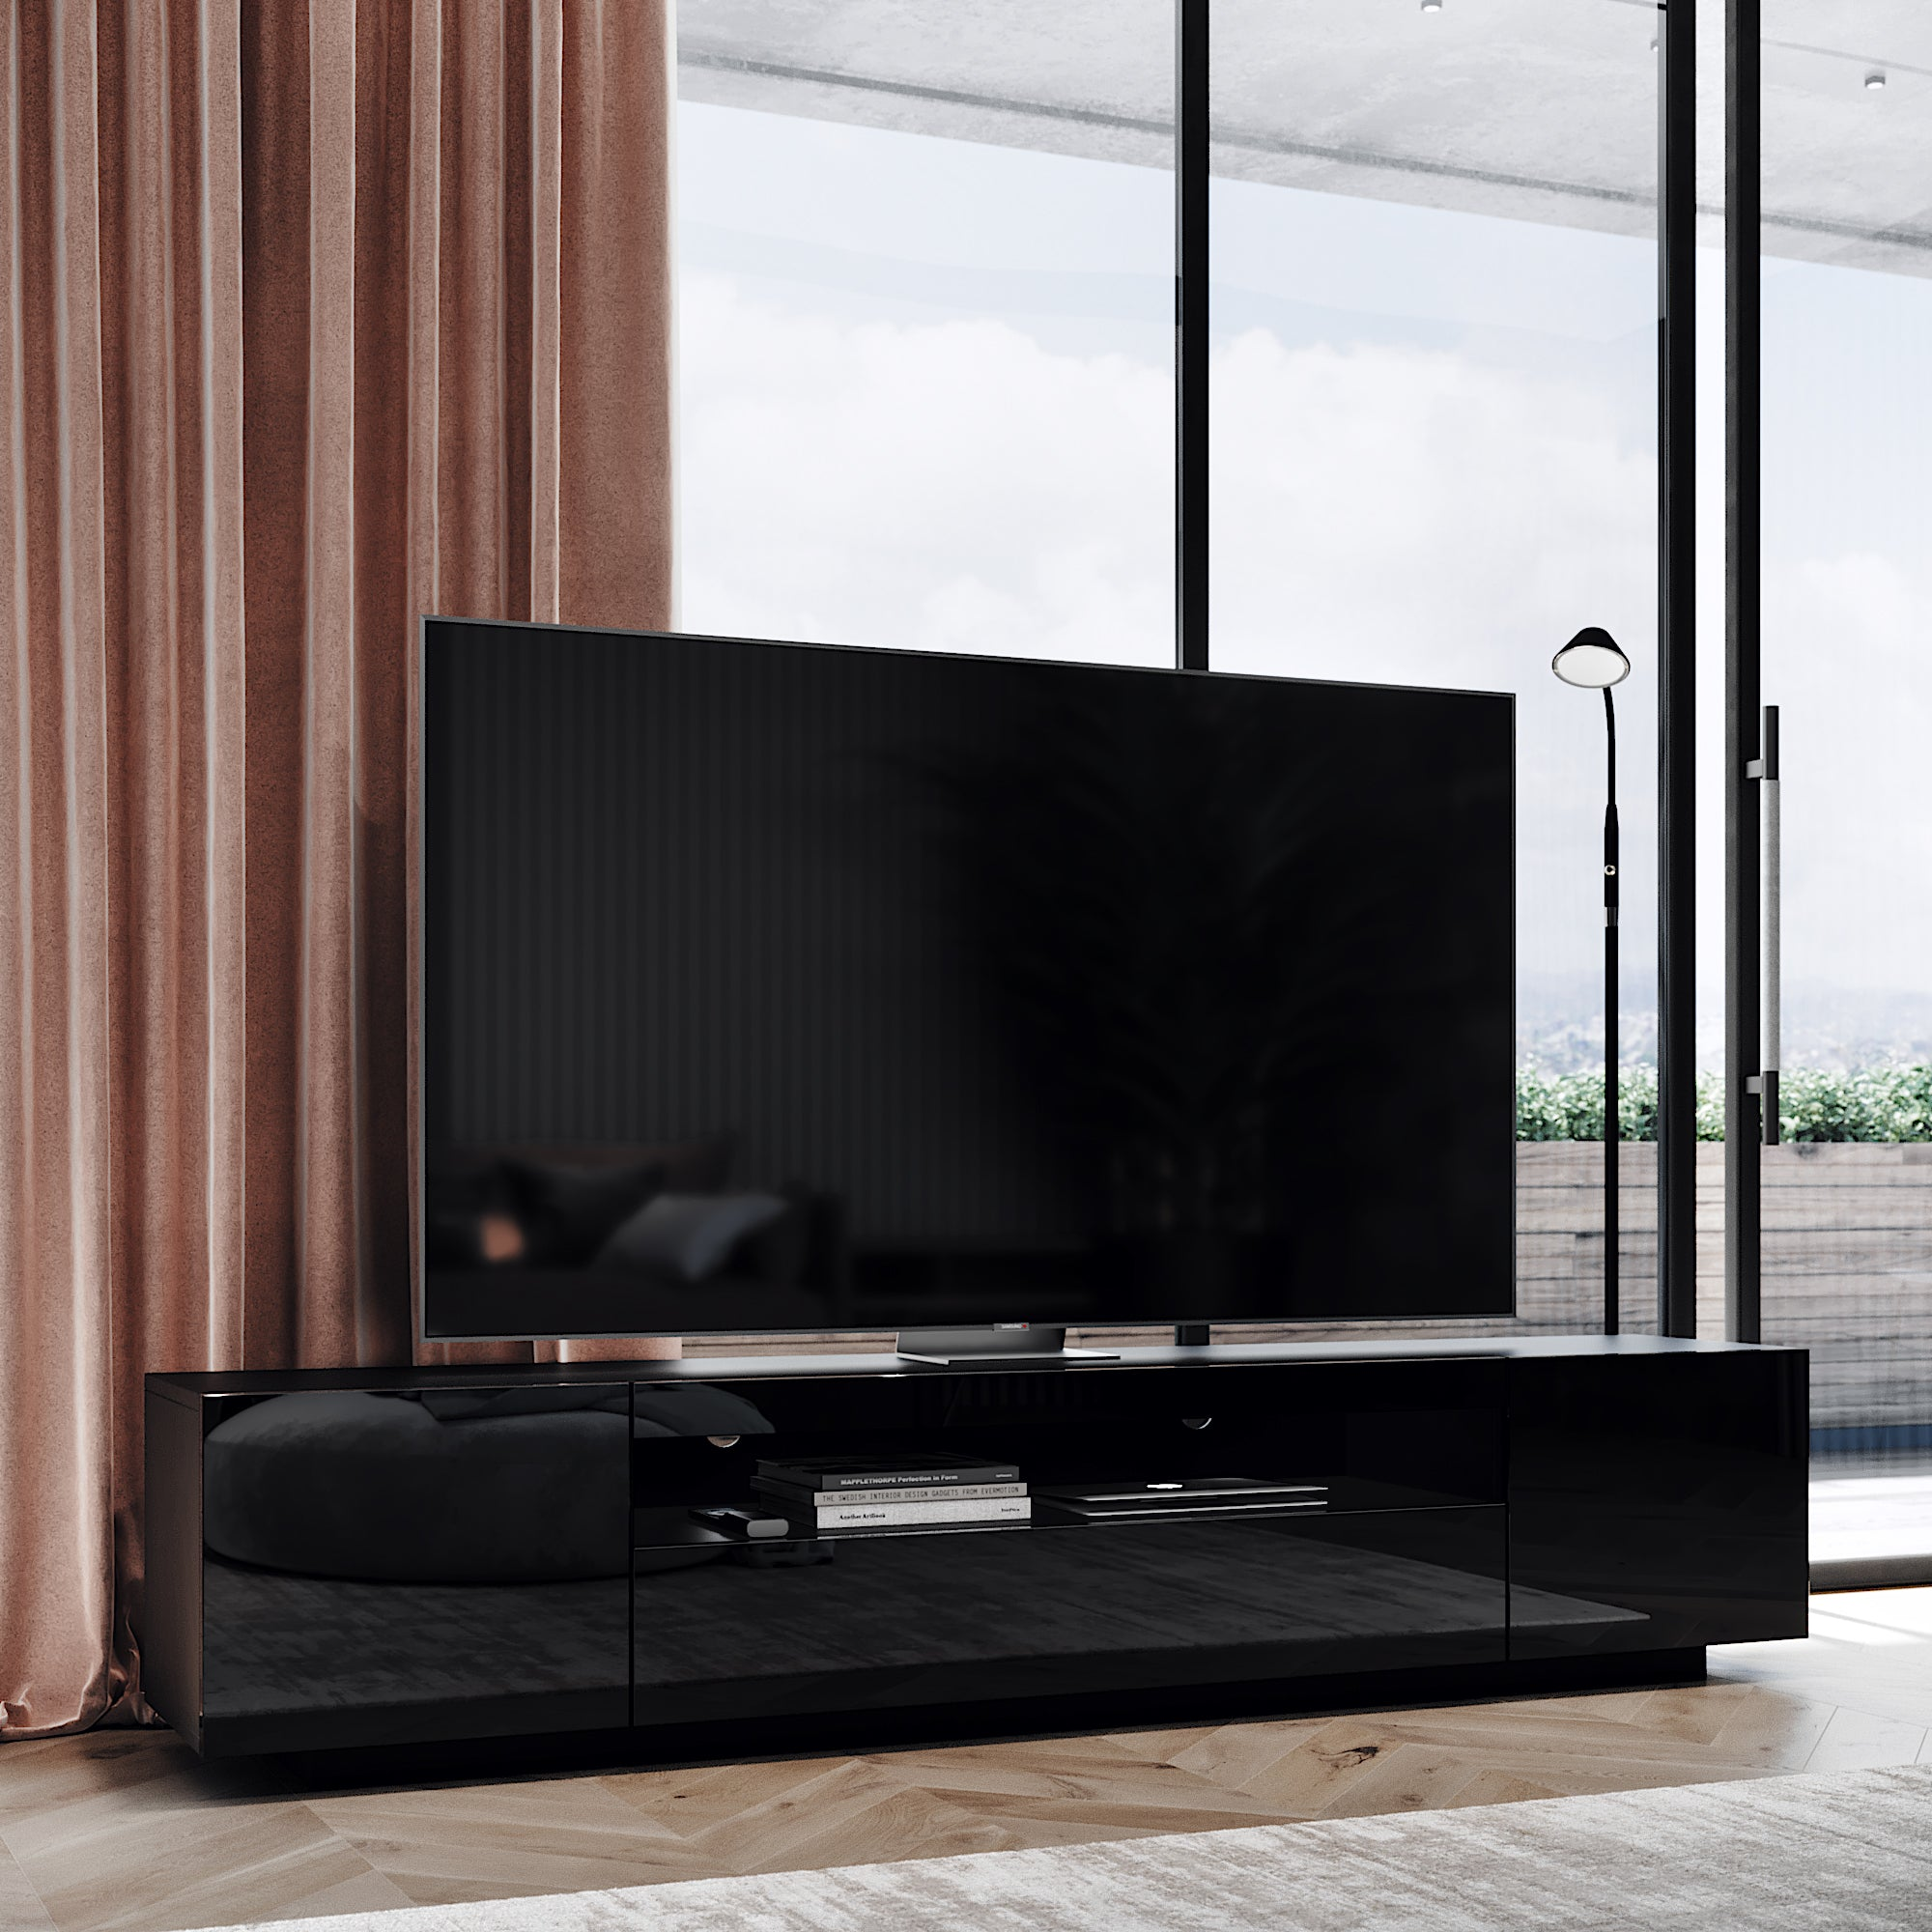 Samso Black Tv Stand For Tvs Up To 75 With Led Lights Loft Loft Design Company